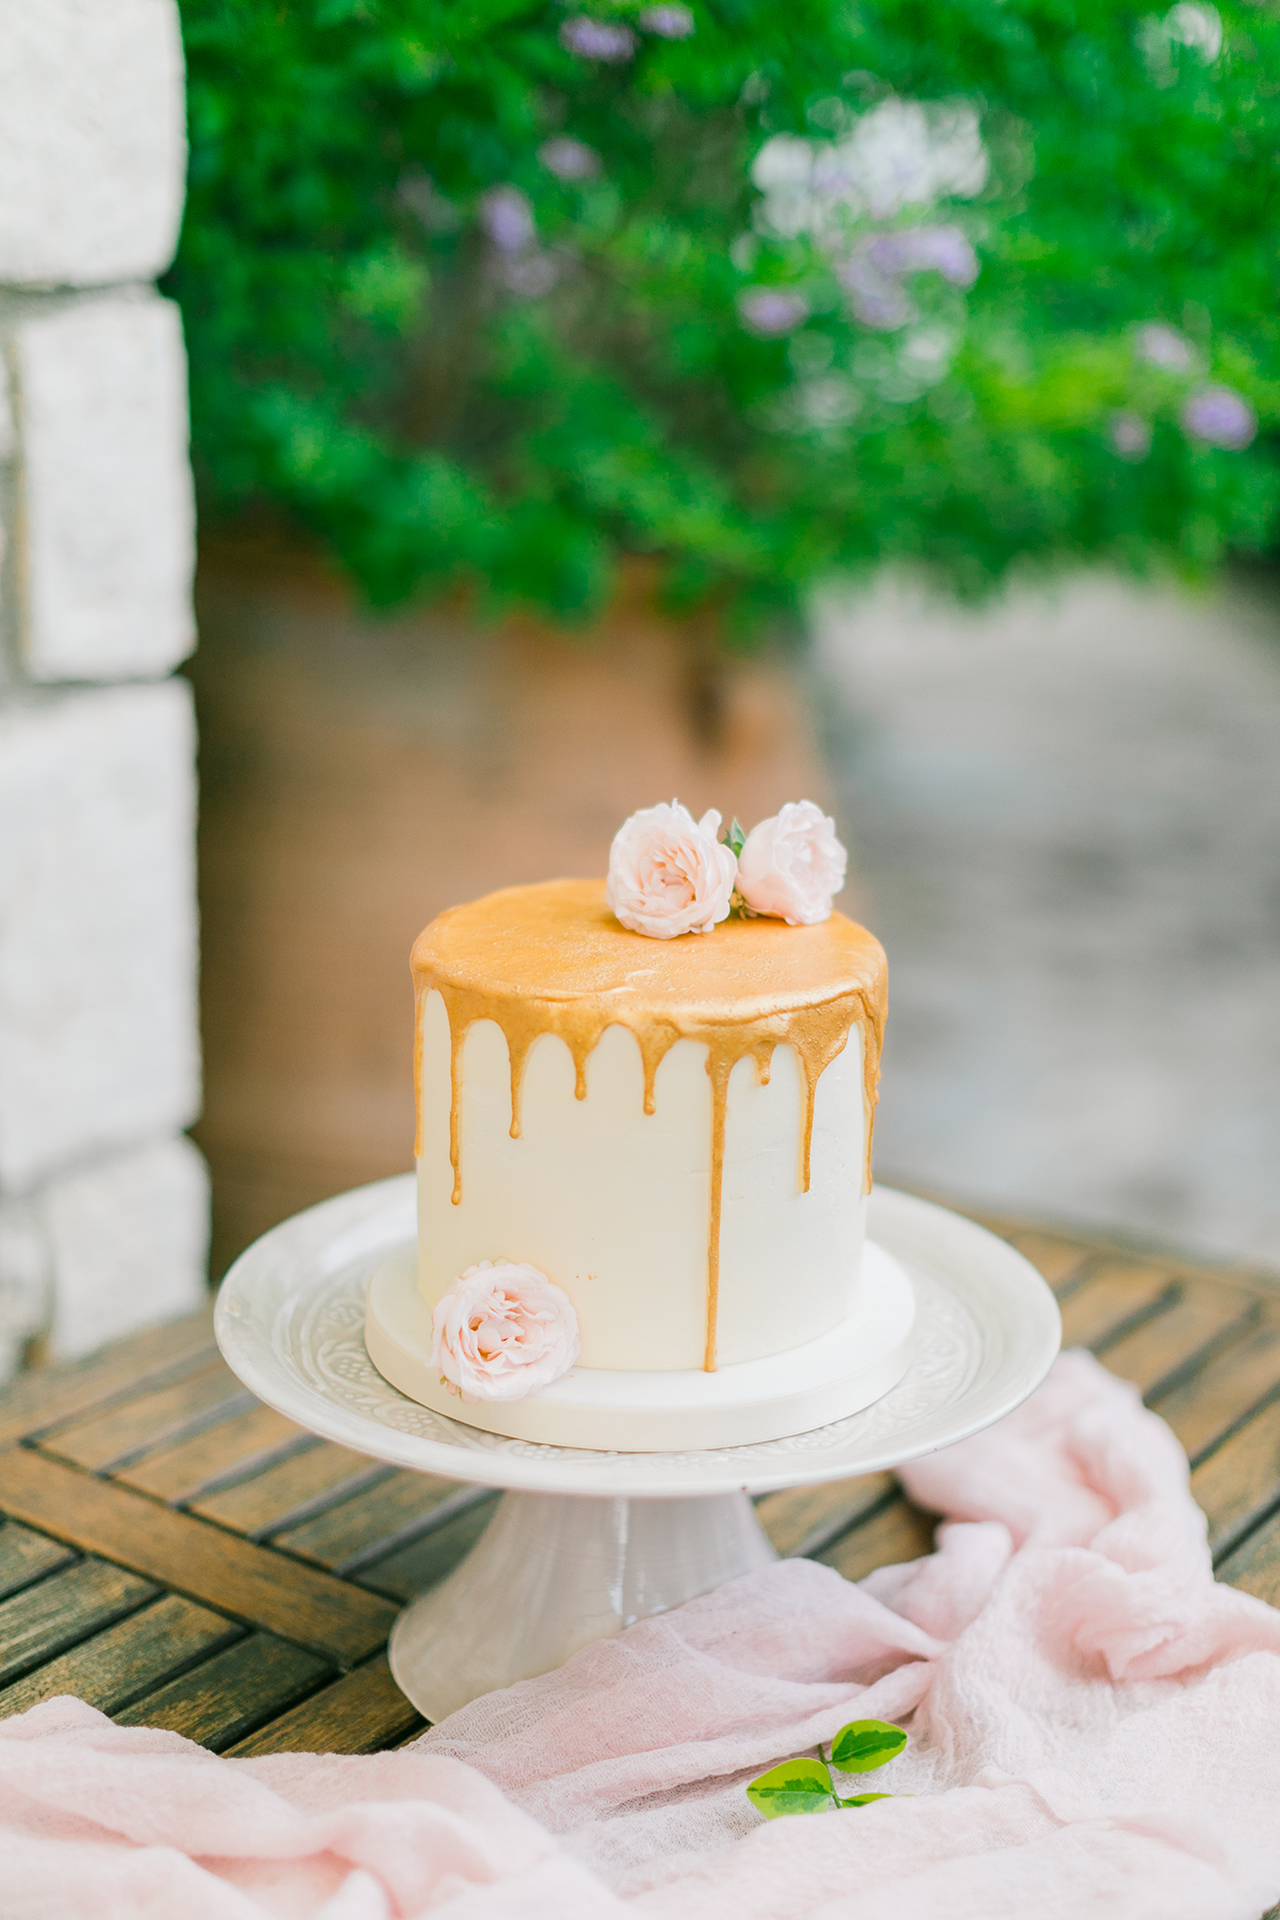 one tier dessert cake with gilded drips and flowers